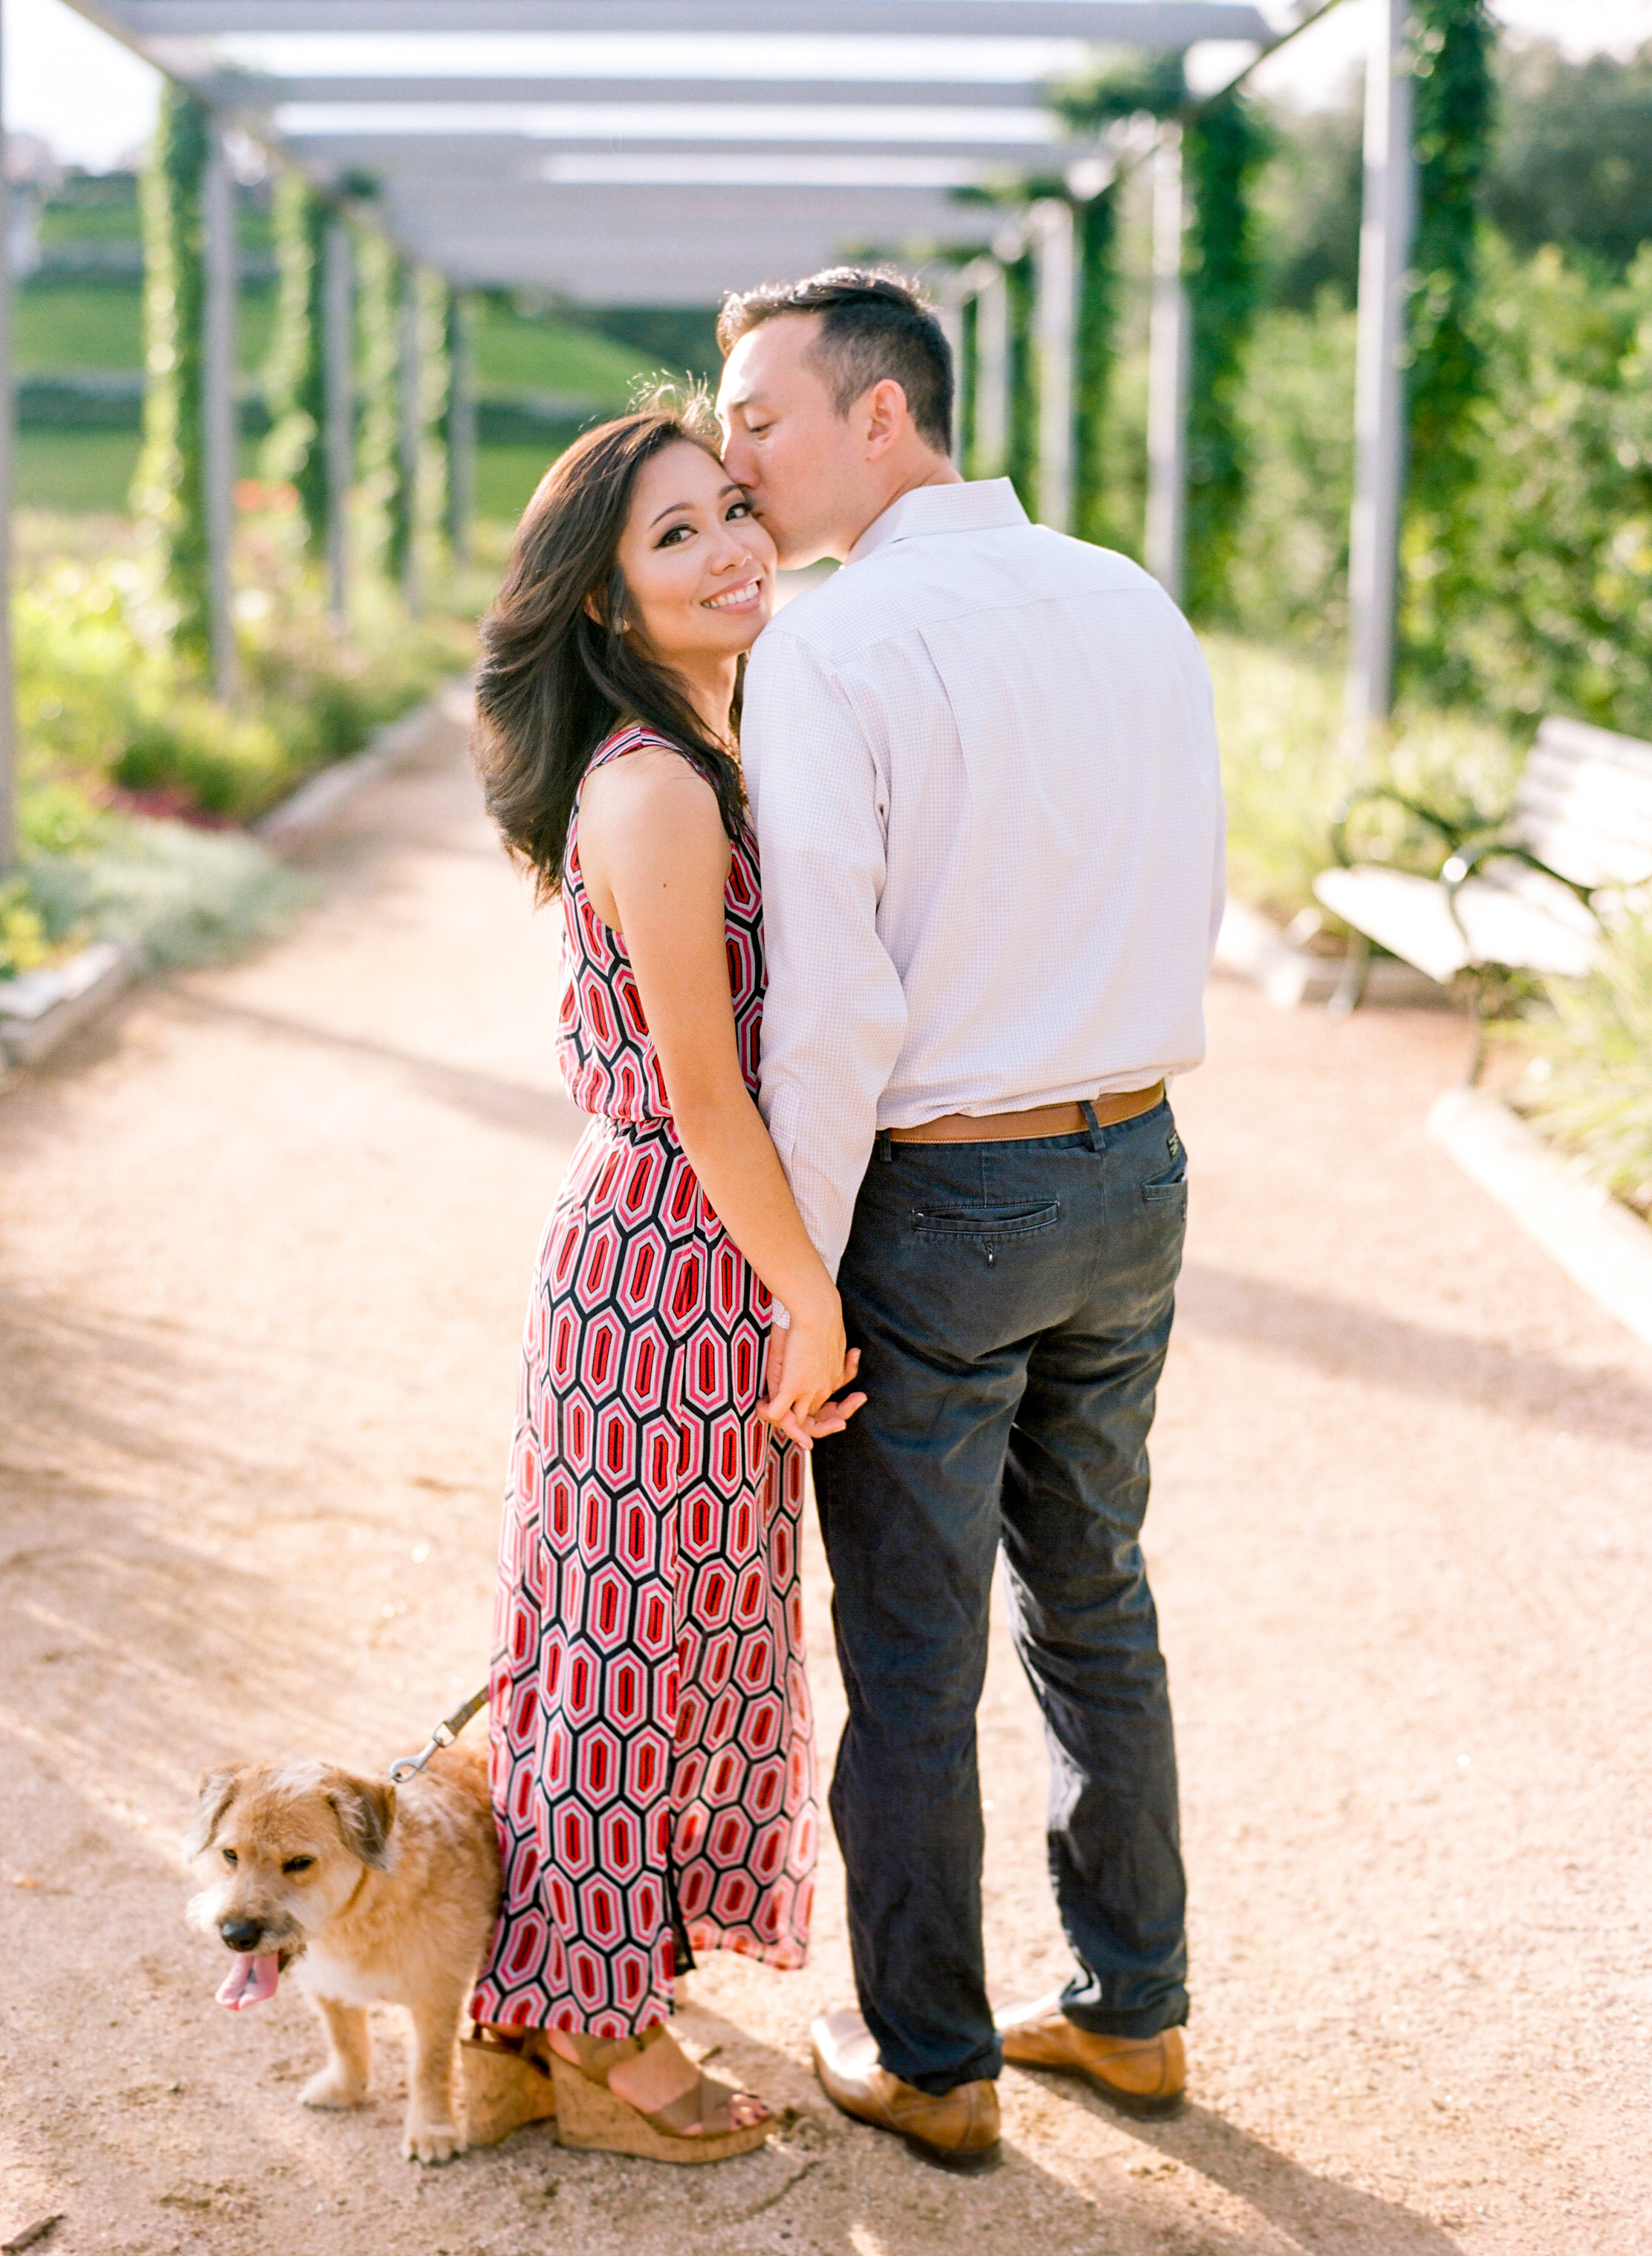 Dana-Fernandez-Photography-Houston-Wedding-Photographer-Engagements-Style-Me-Pretty-Film-Destination-Texas-4.jpg